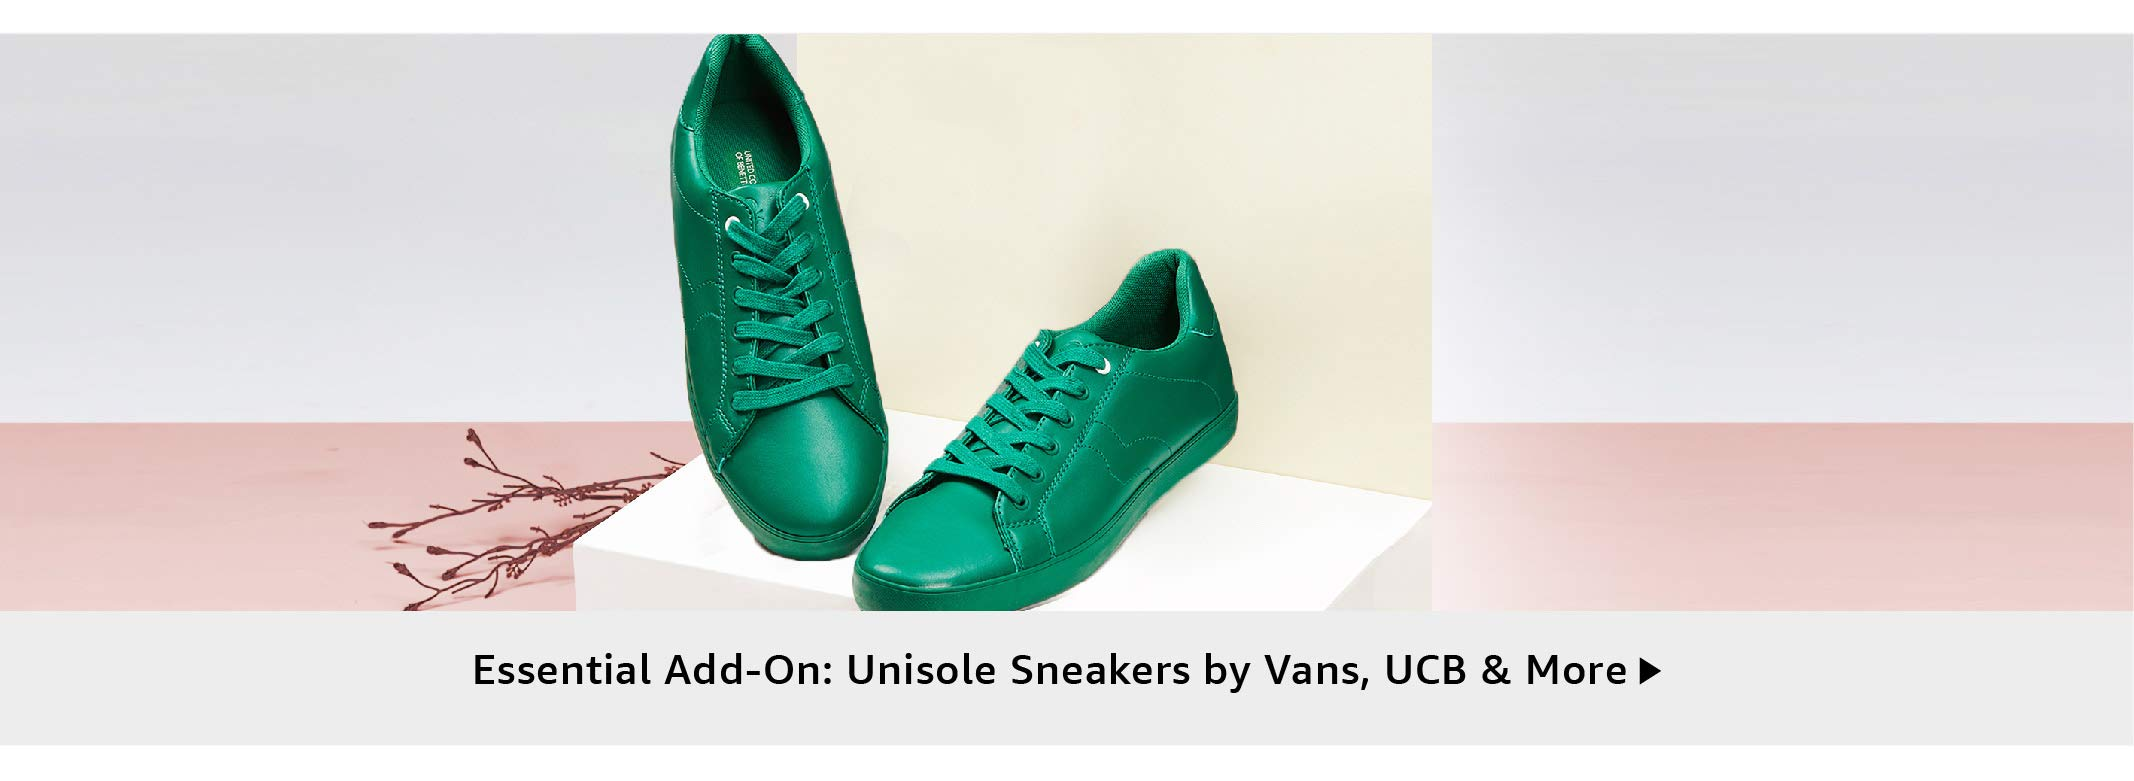 Essential Add-on: Unisole Sneakers